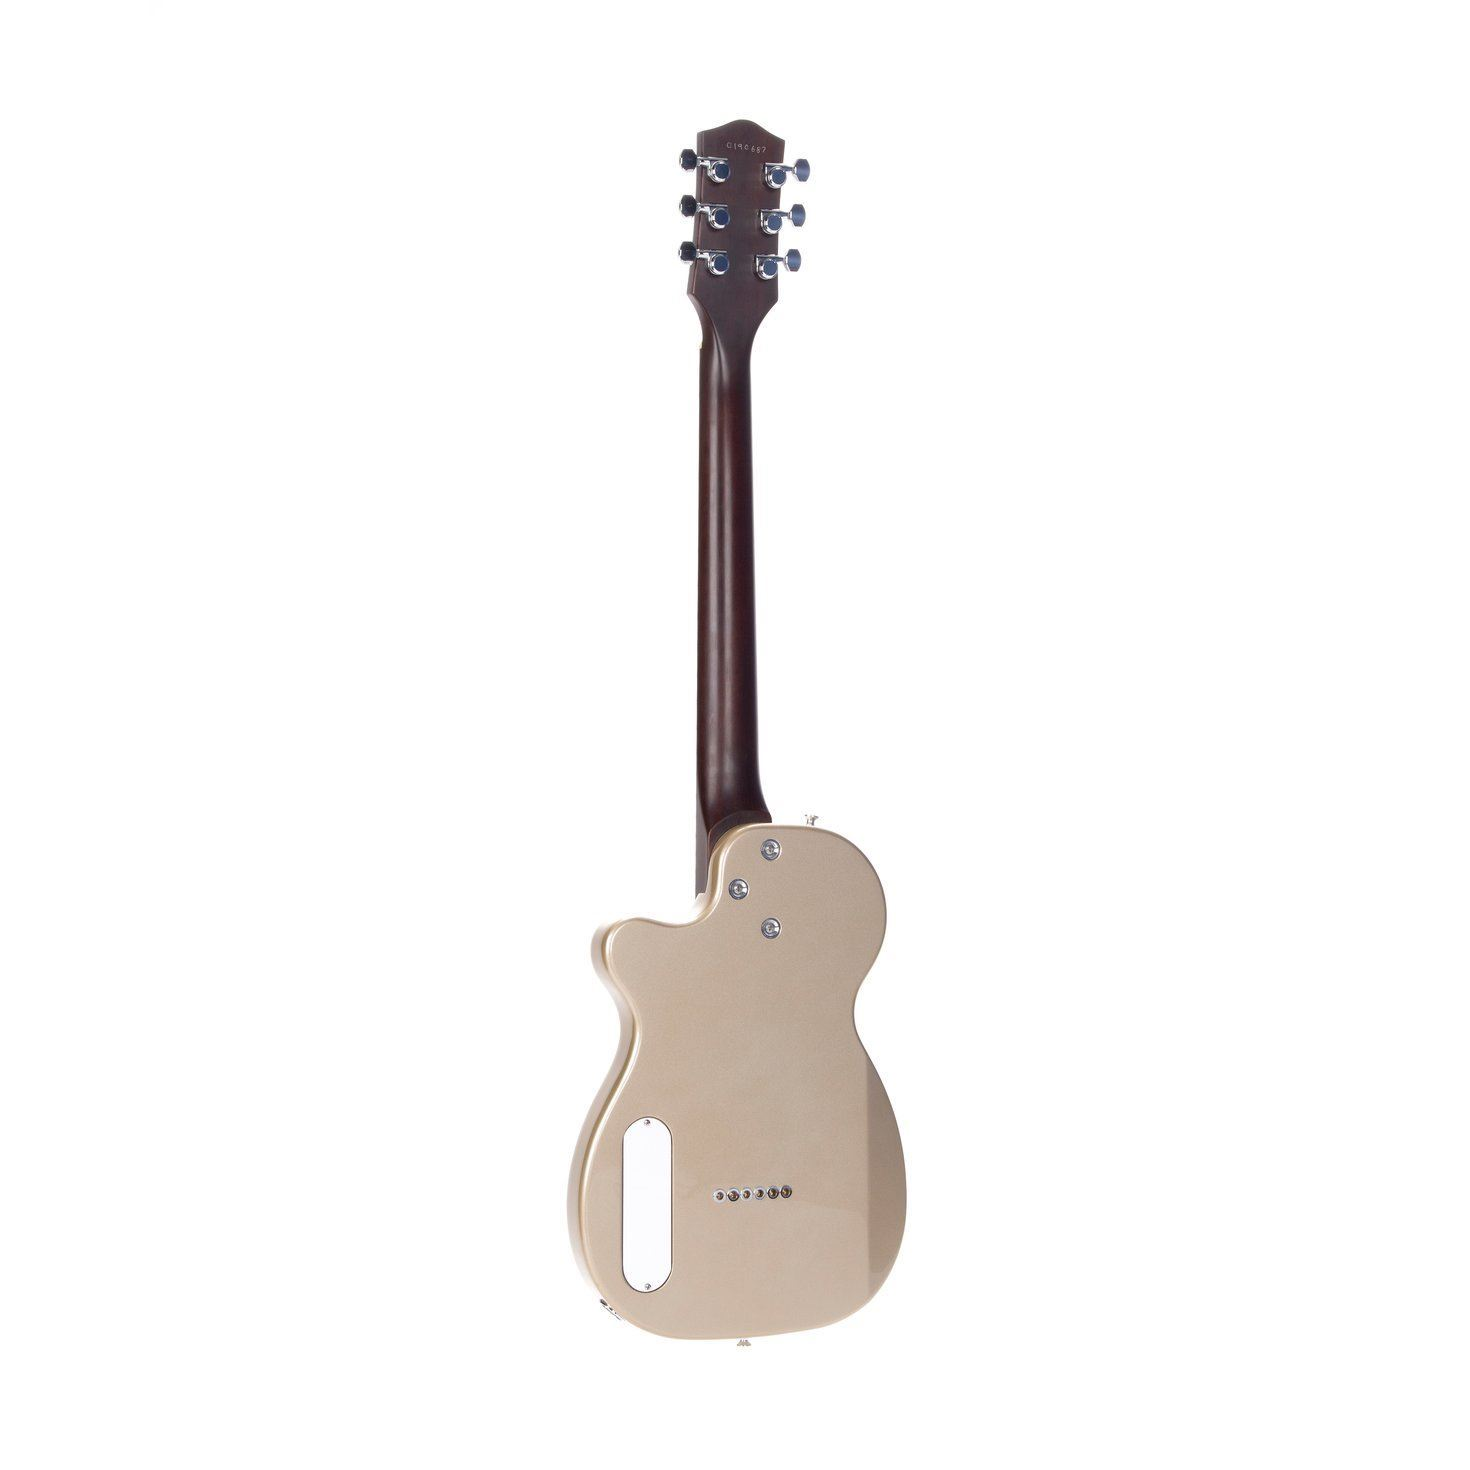 Harmony Juno Electric Guitar in Champagne - Back